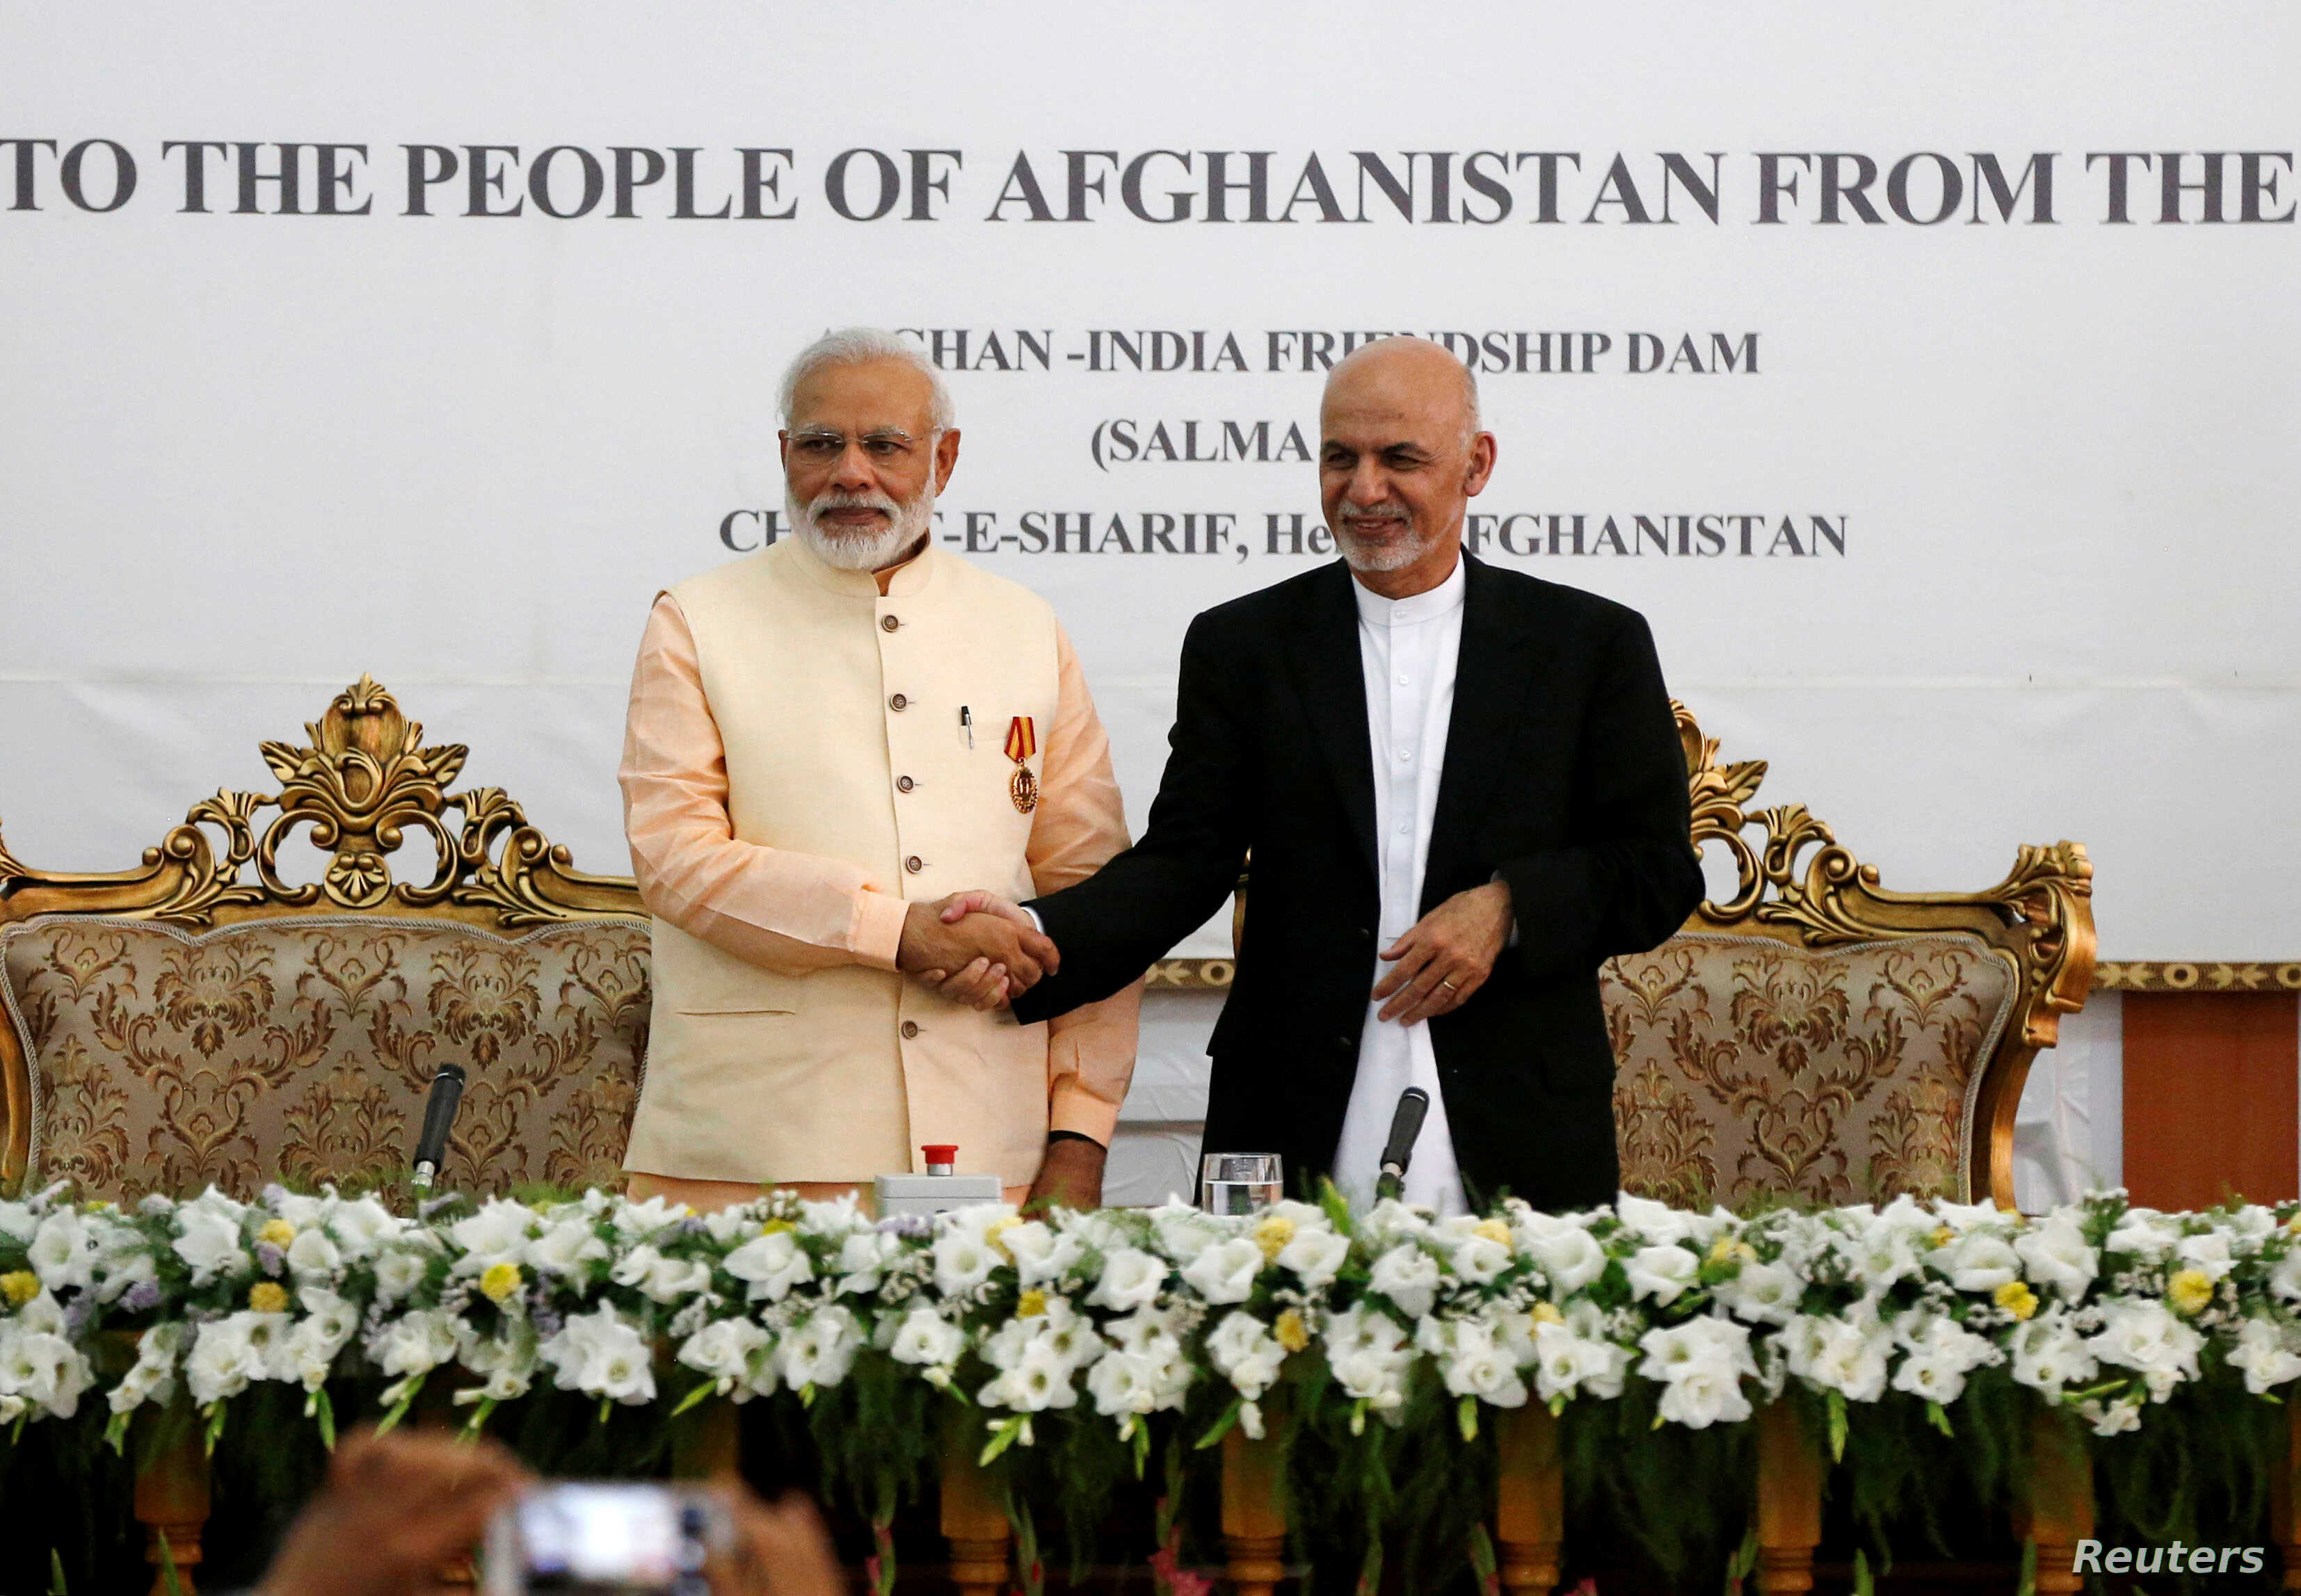 Iran Criticism of Afghan Dam Projects Draws Rebuke From Kabul